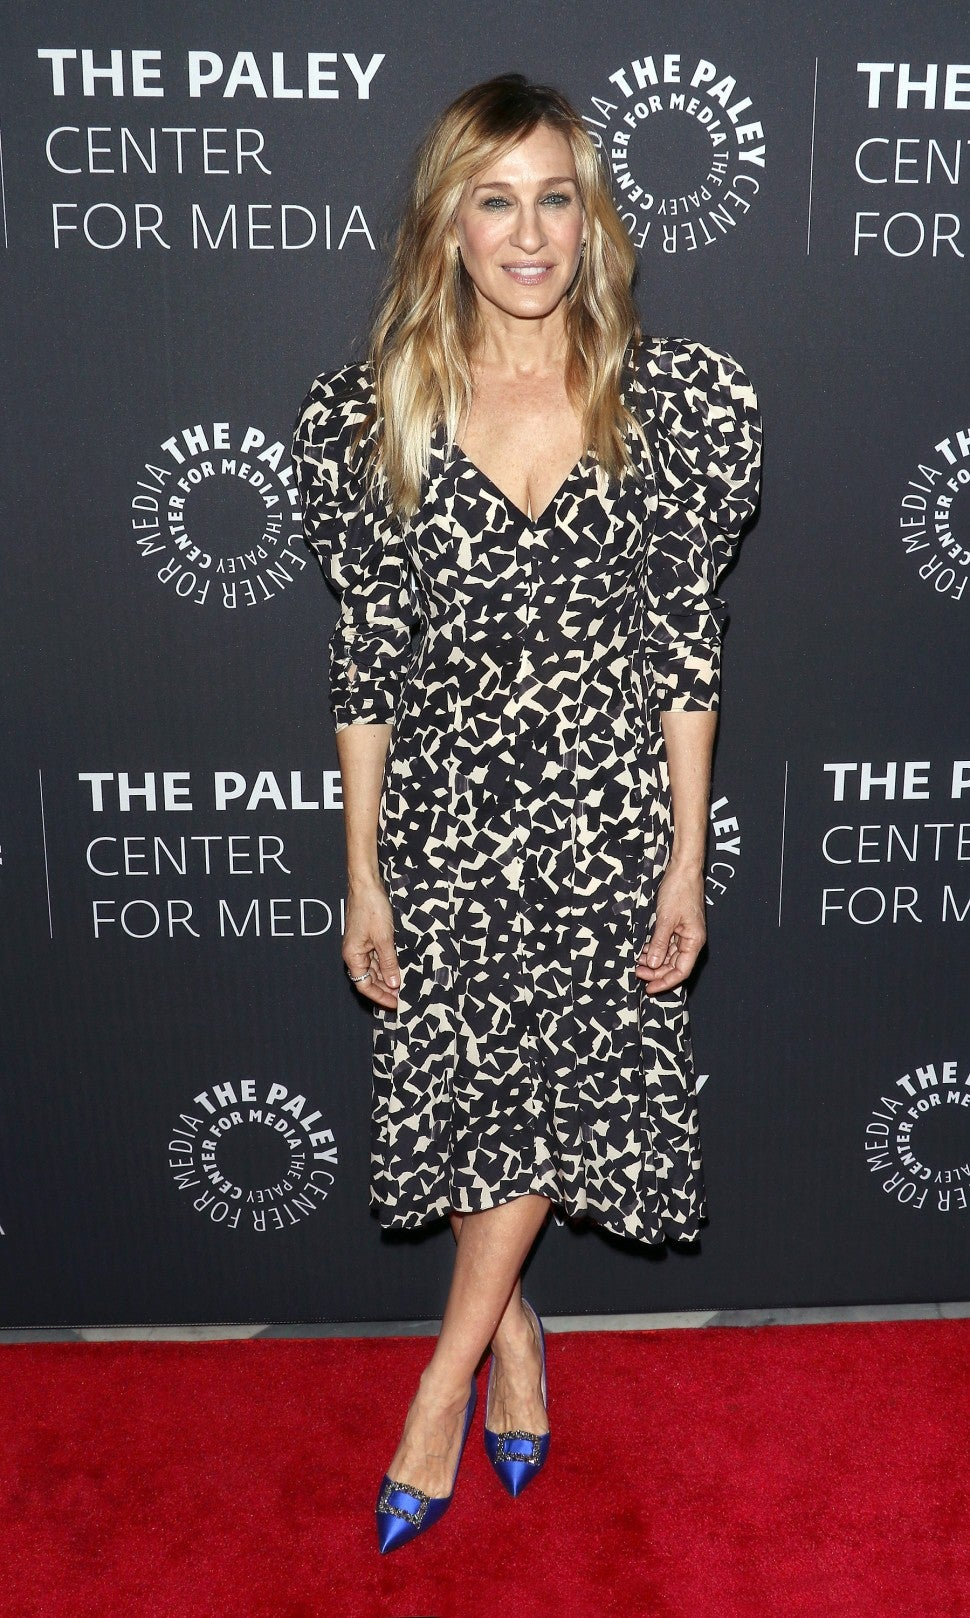 Sarah Jessica Parker at Paley in NYC